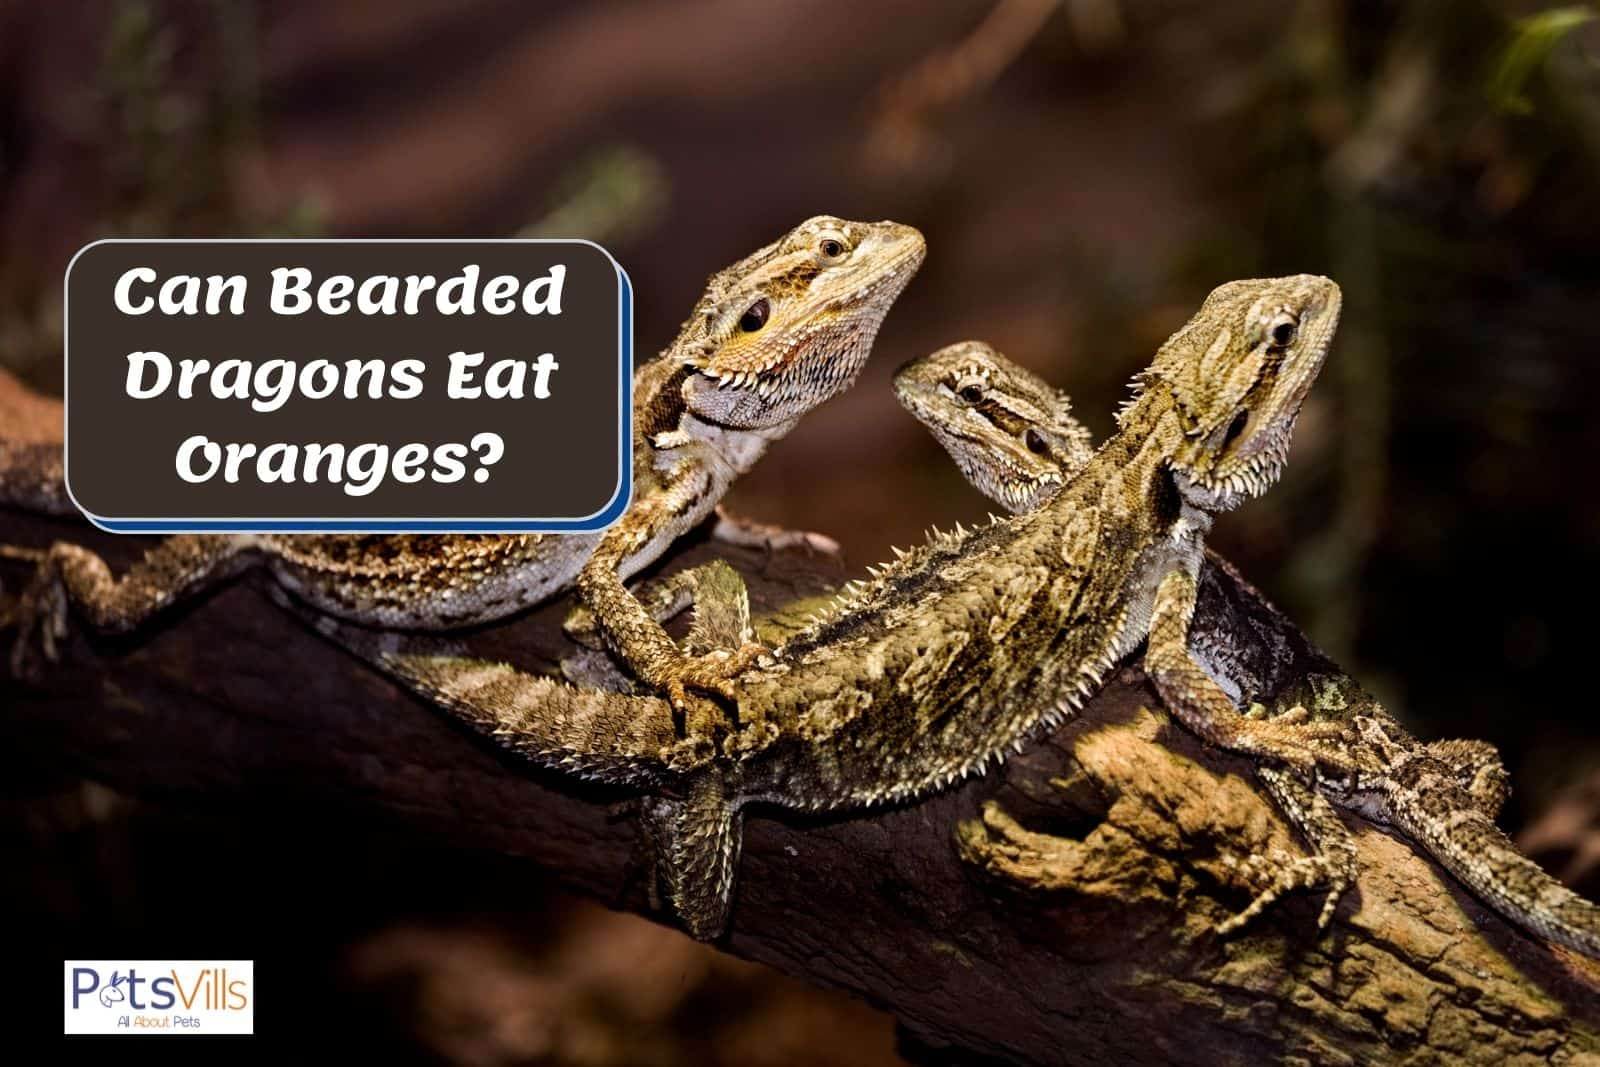 3 little baby bearded dragons on a branch of a tree